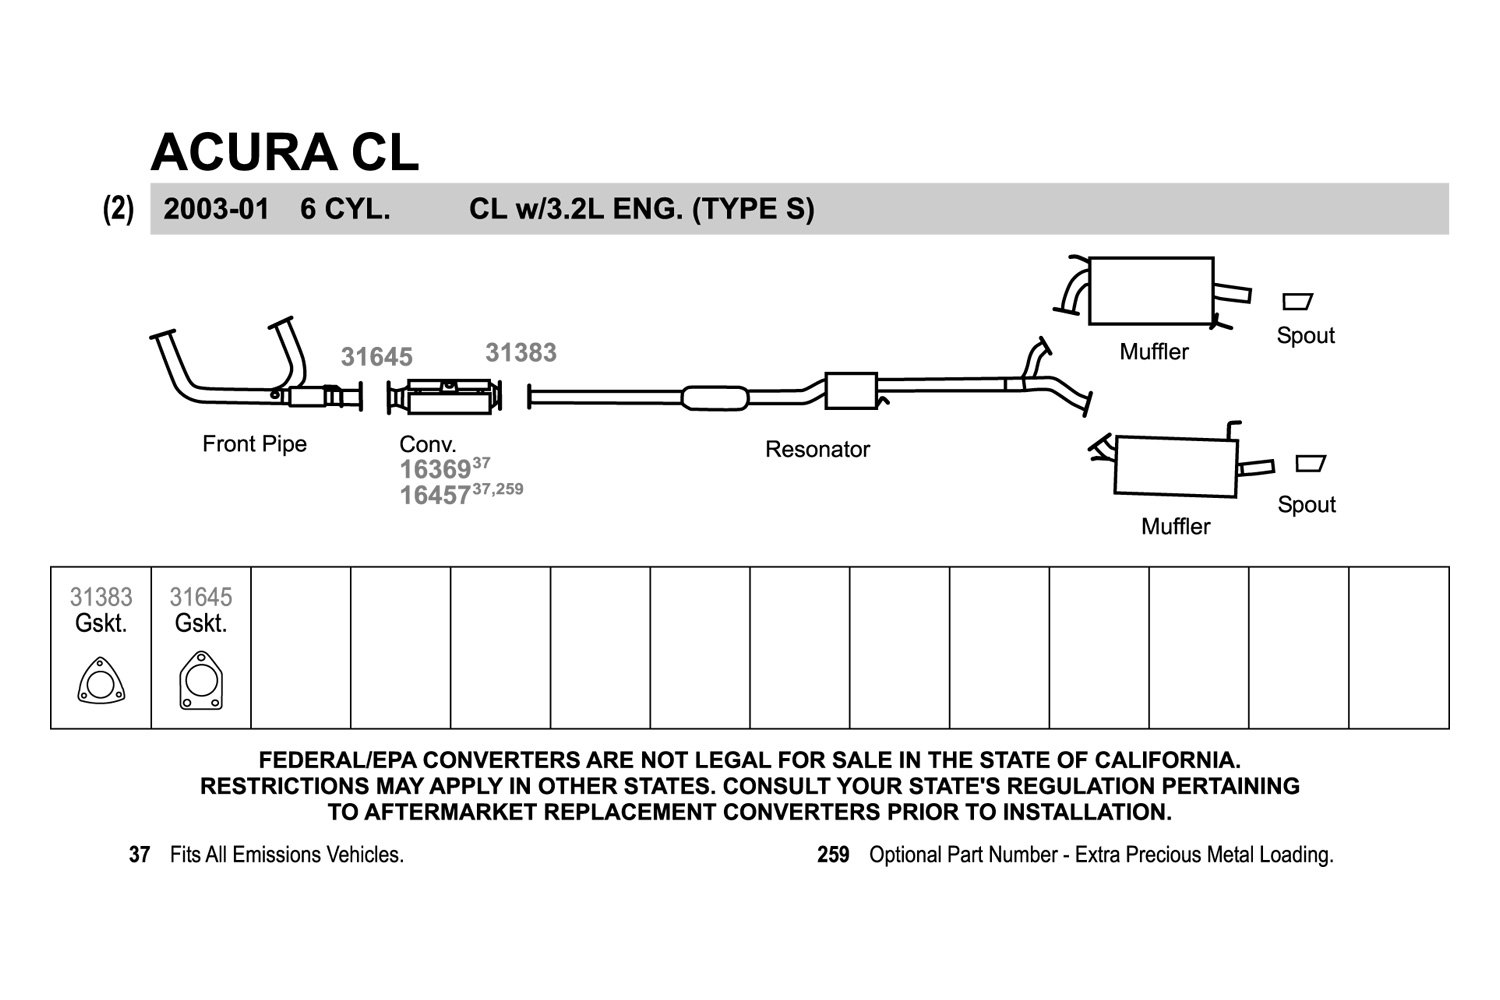 Acura Tl Exhaust Diagram Trusted Wiring Diagram - Acura tl exhaust system